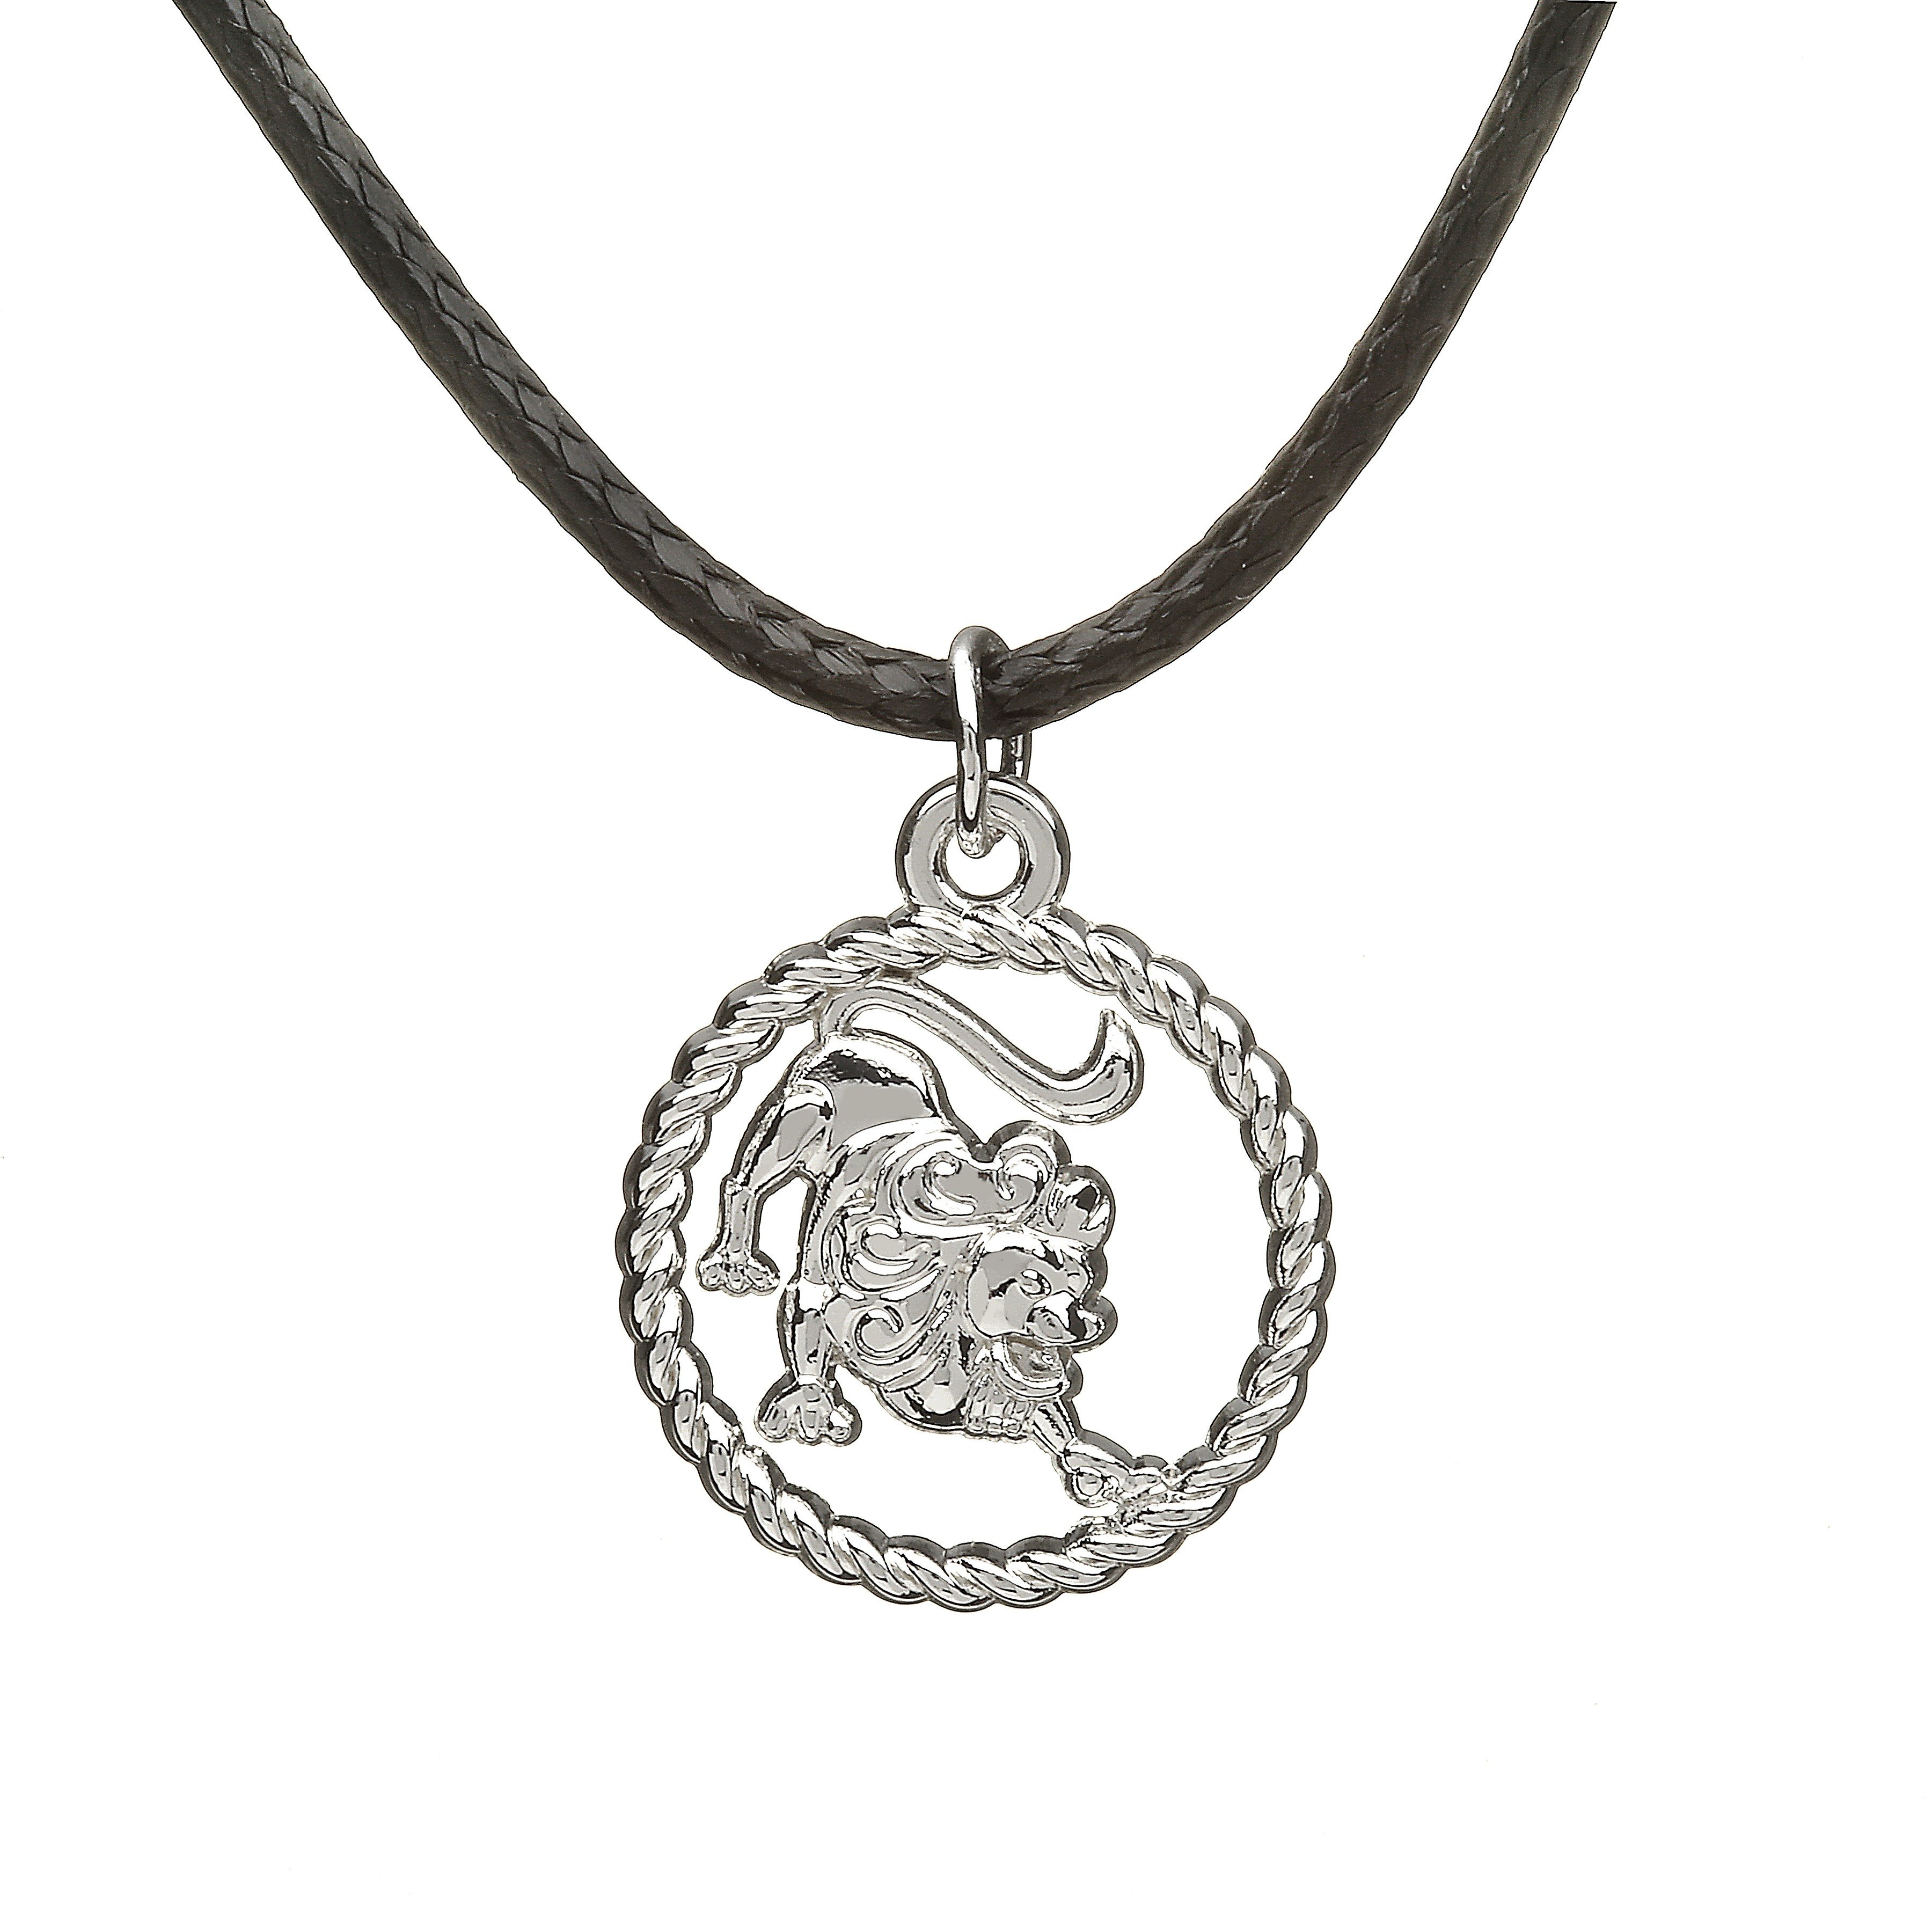 shop lion pendant denimes jewellery necklace serge silver